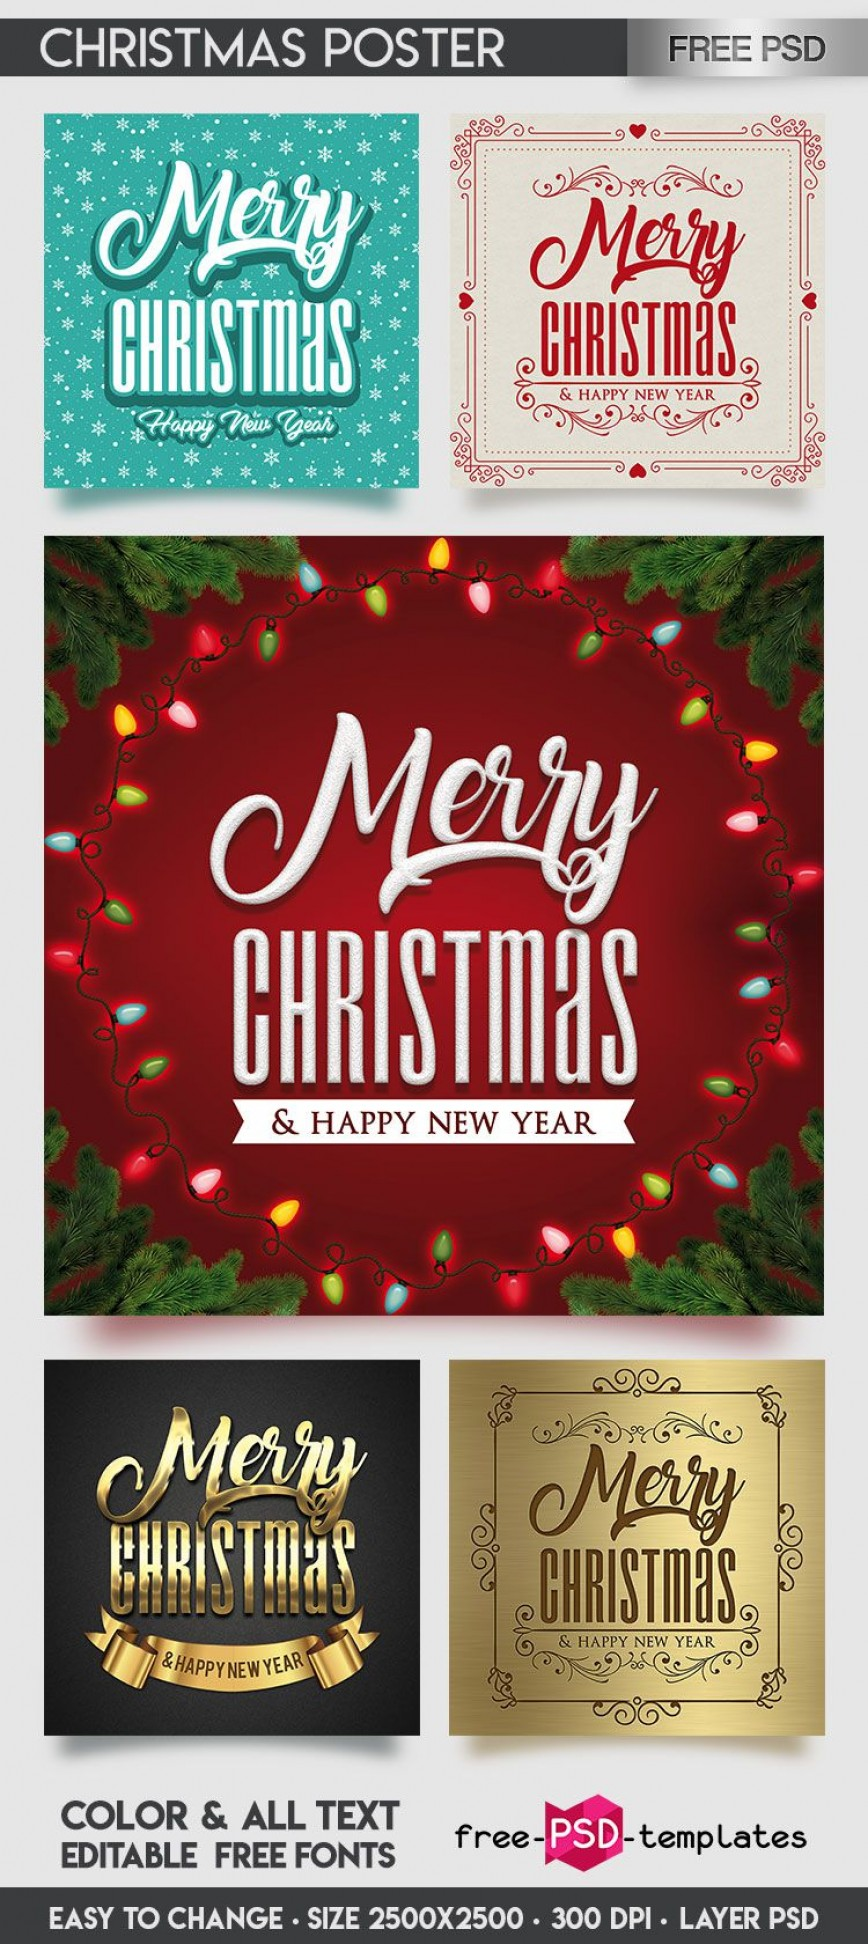 009 Fascinating Free Christma Poster Template Inspiration  Uk Party Download Fair868